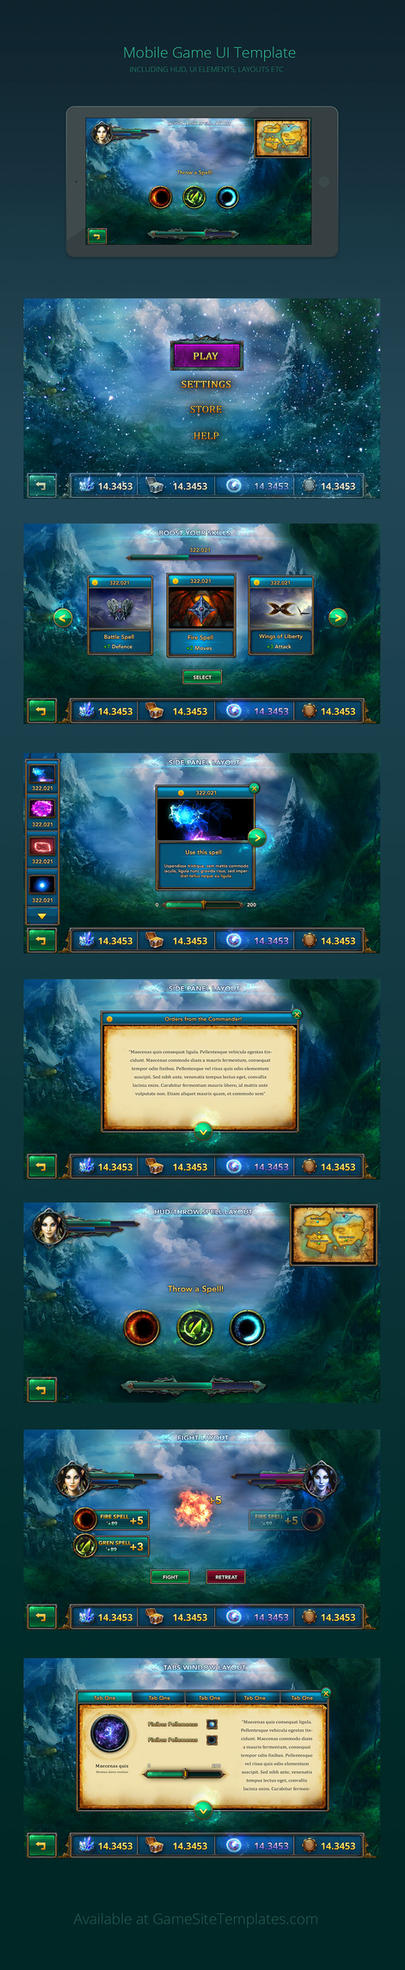 Mobile Game Fantasy UI by karsten